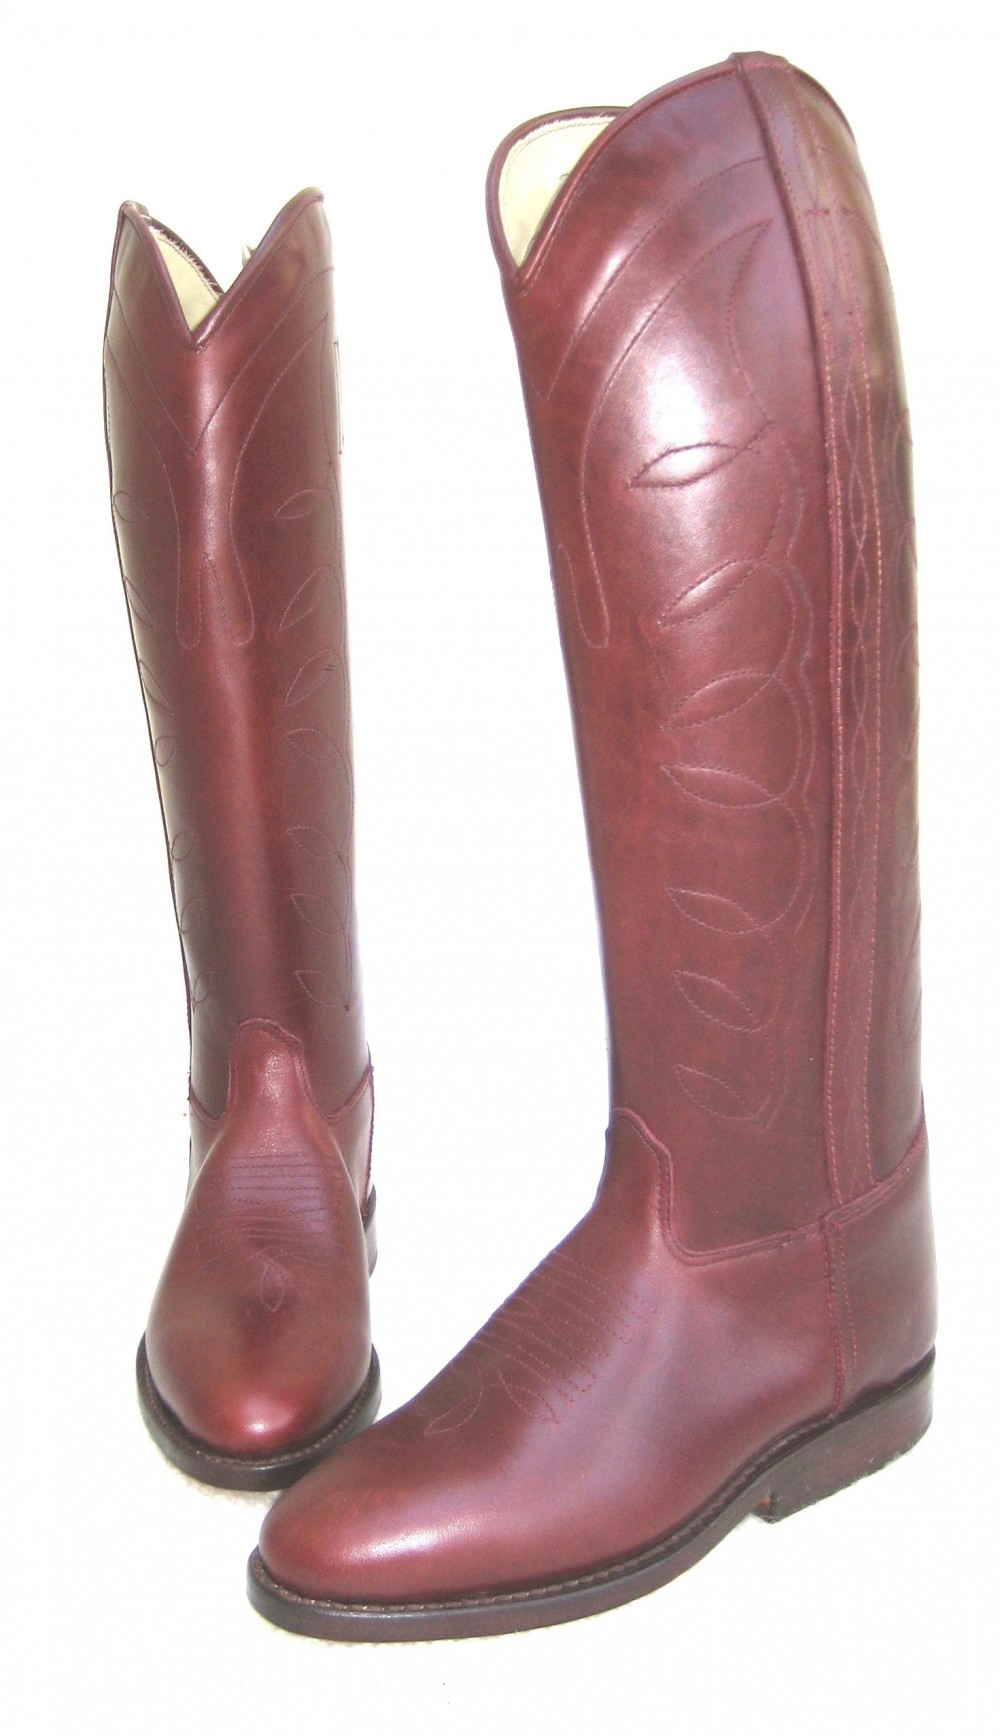 Texan style Argentine Polo boots